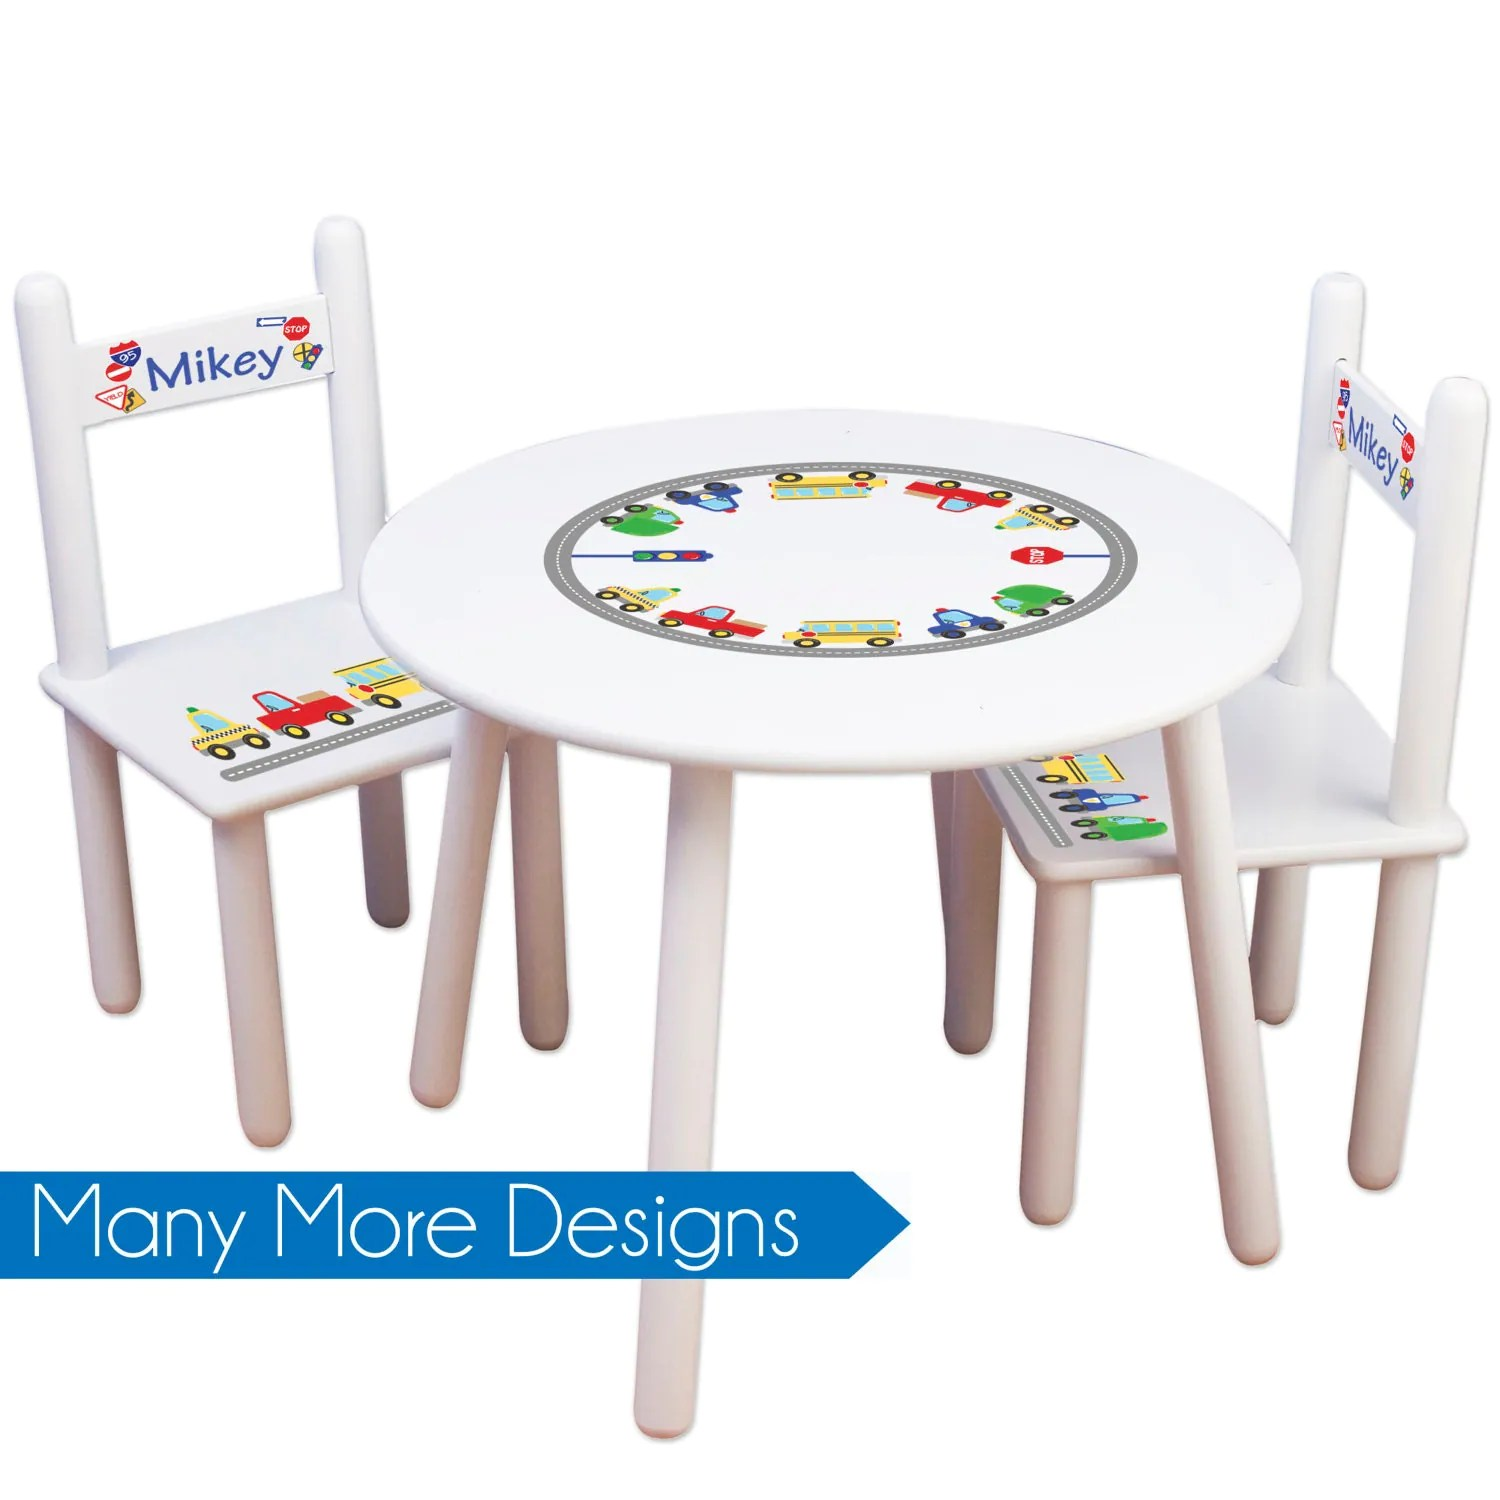 Toddler Boy Chair Customized Childs Table And Chair For Boys Kids Sized Tables